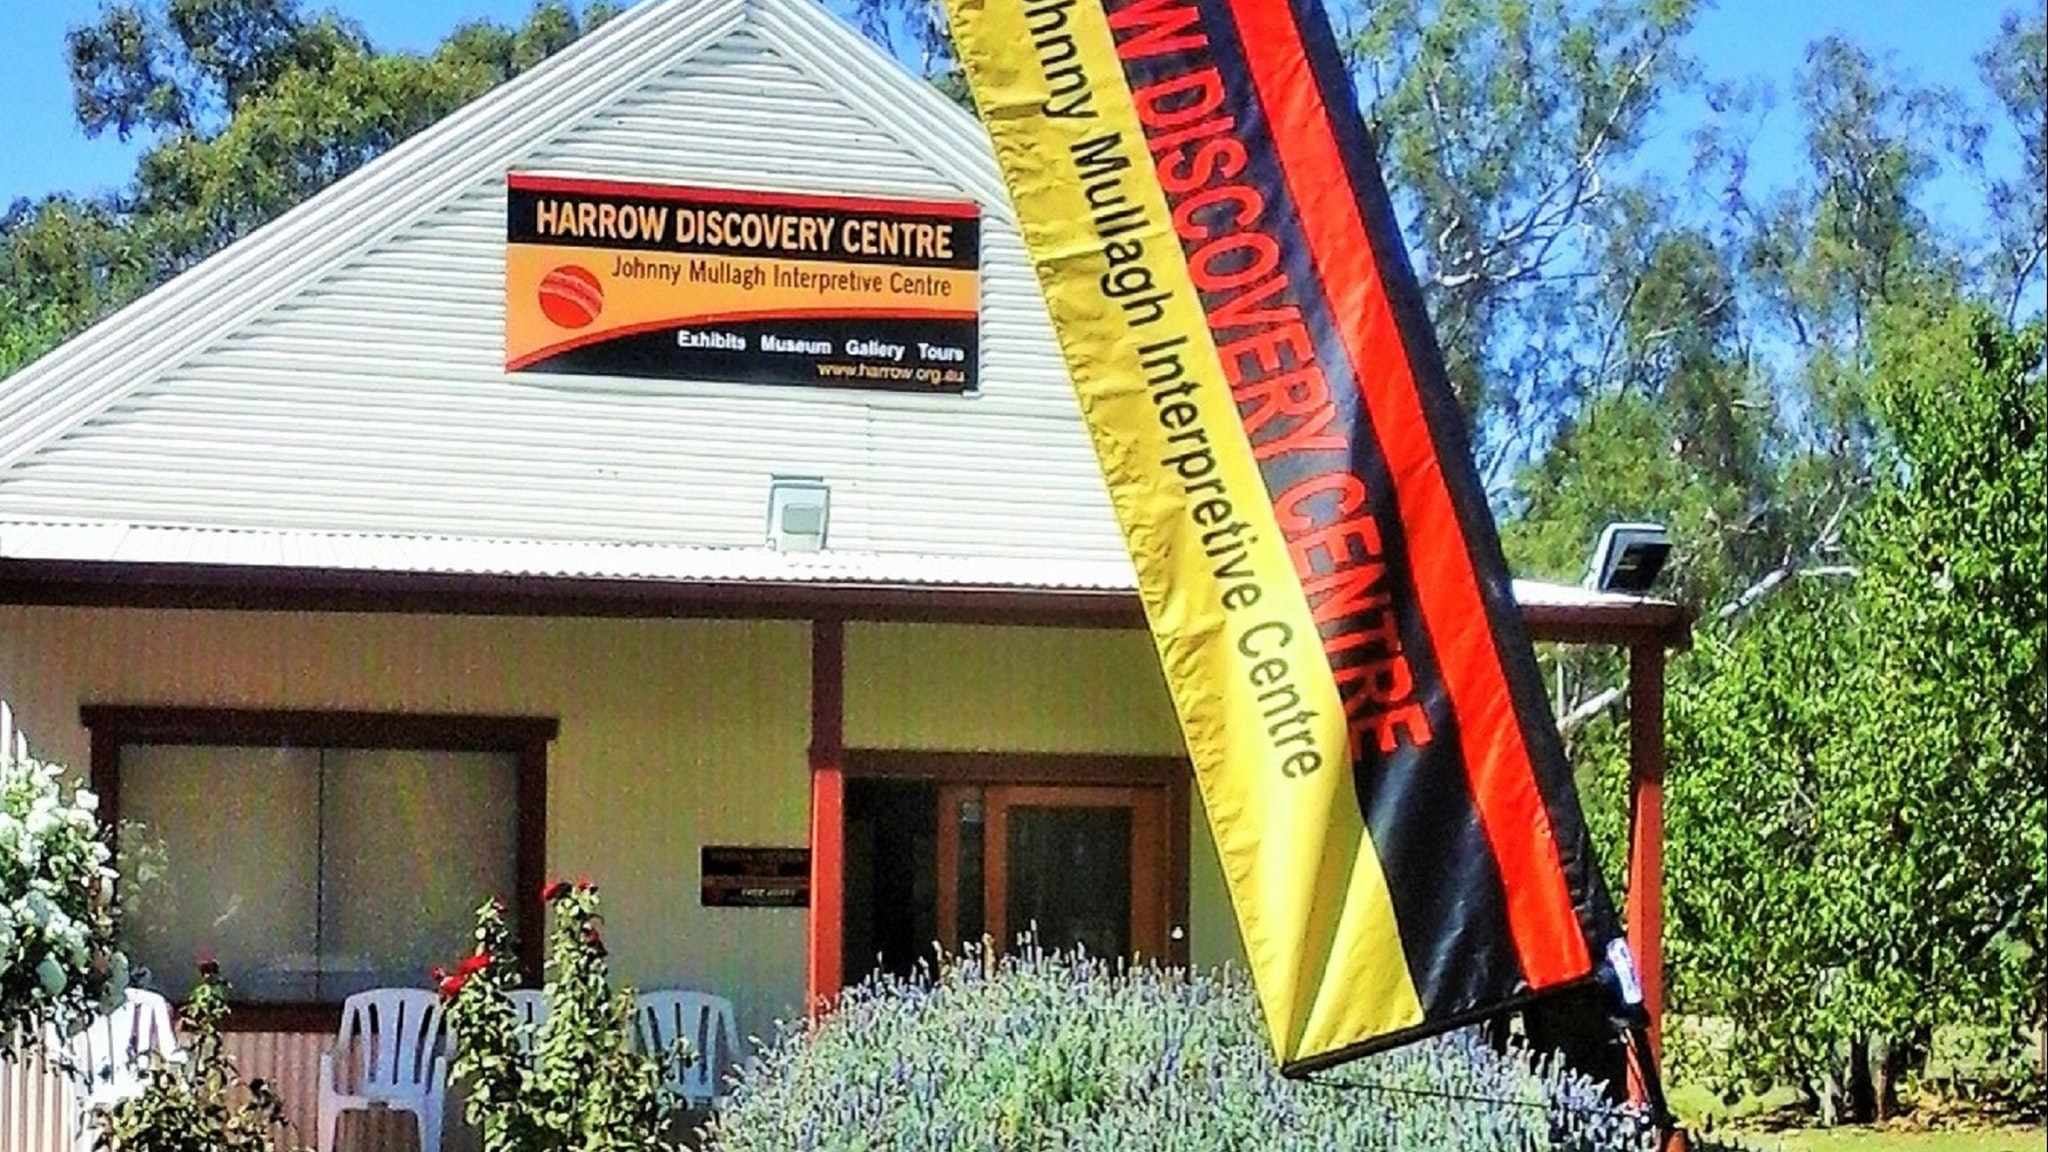 Harrow Discovery Centre and Johnny Mullagh Interpretive Centre